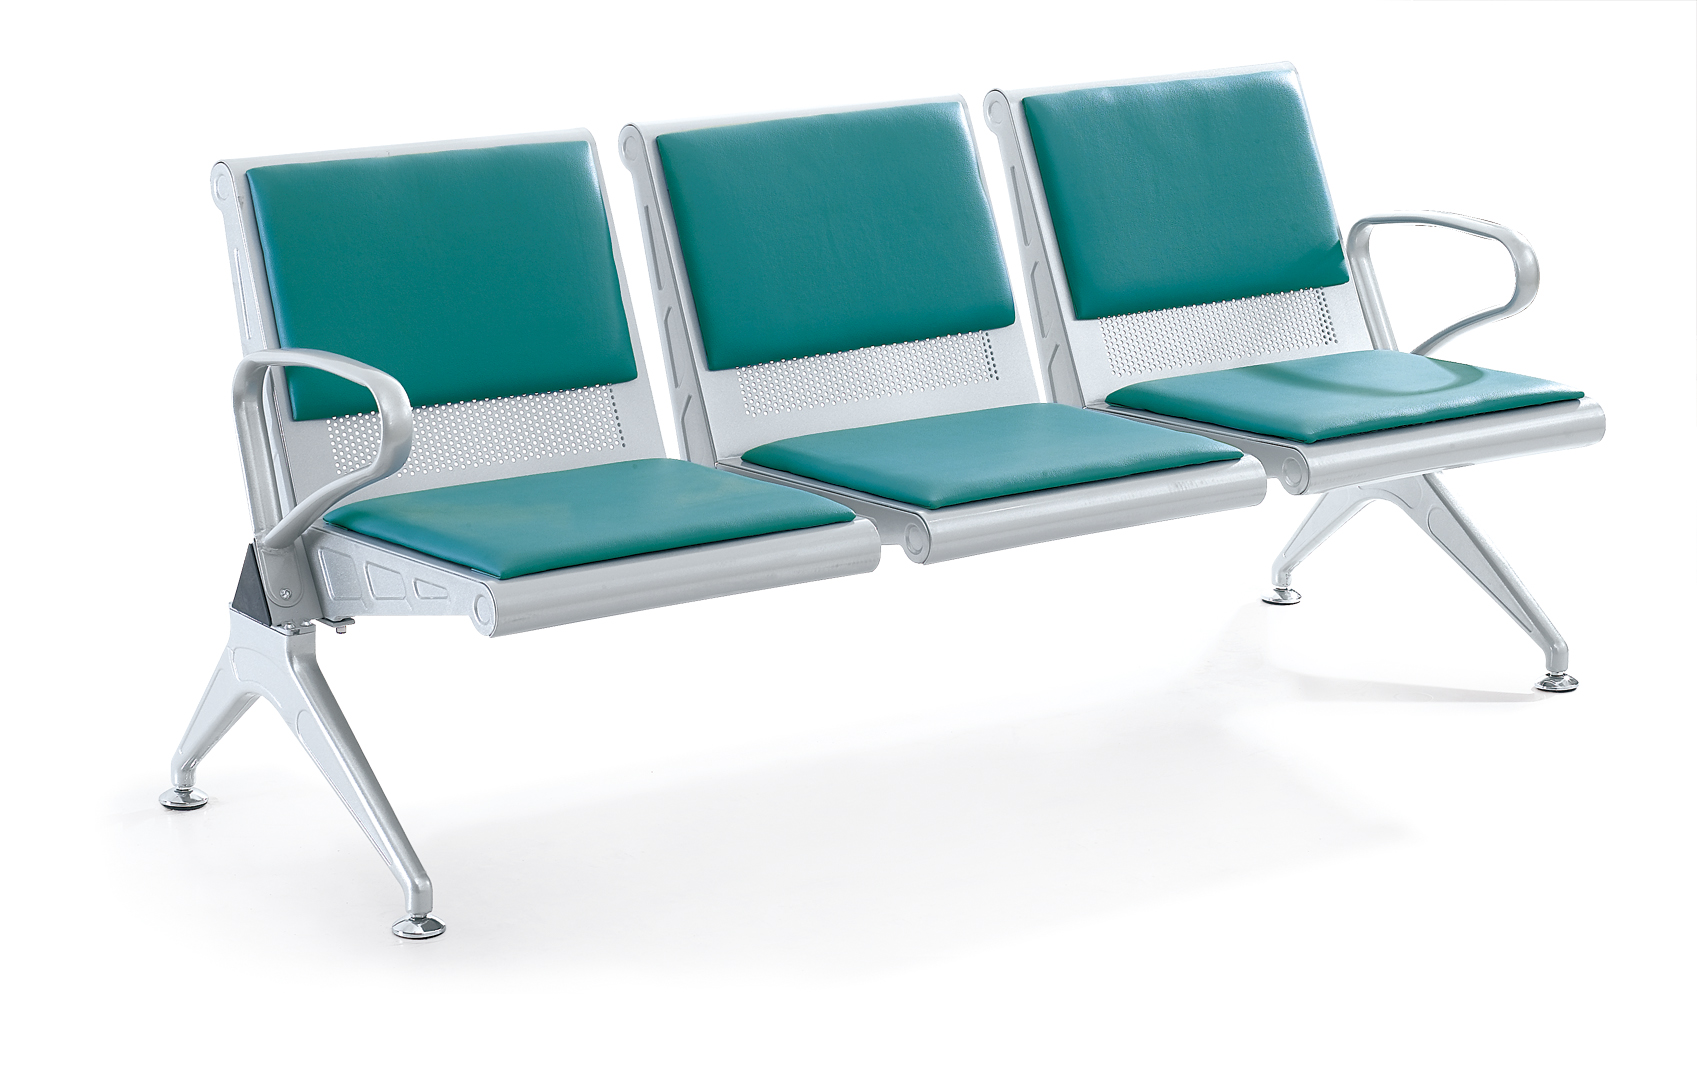 WNACS-THREE SETAS METAL POWDER PAINTED AIRPORT WATIING CHAIR WITH PVC OR PU CUSHION